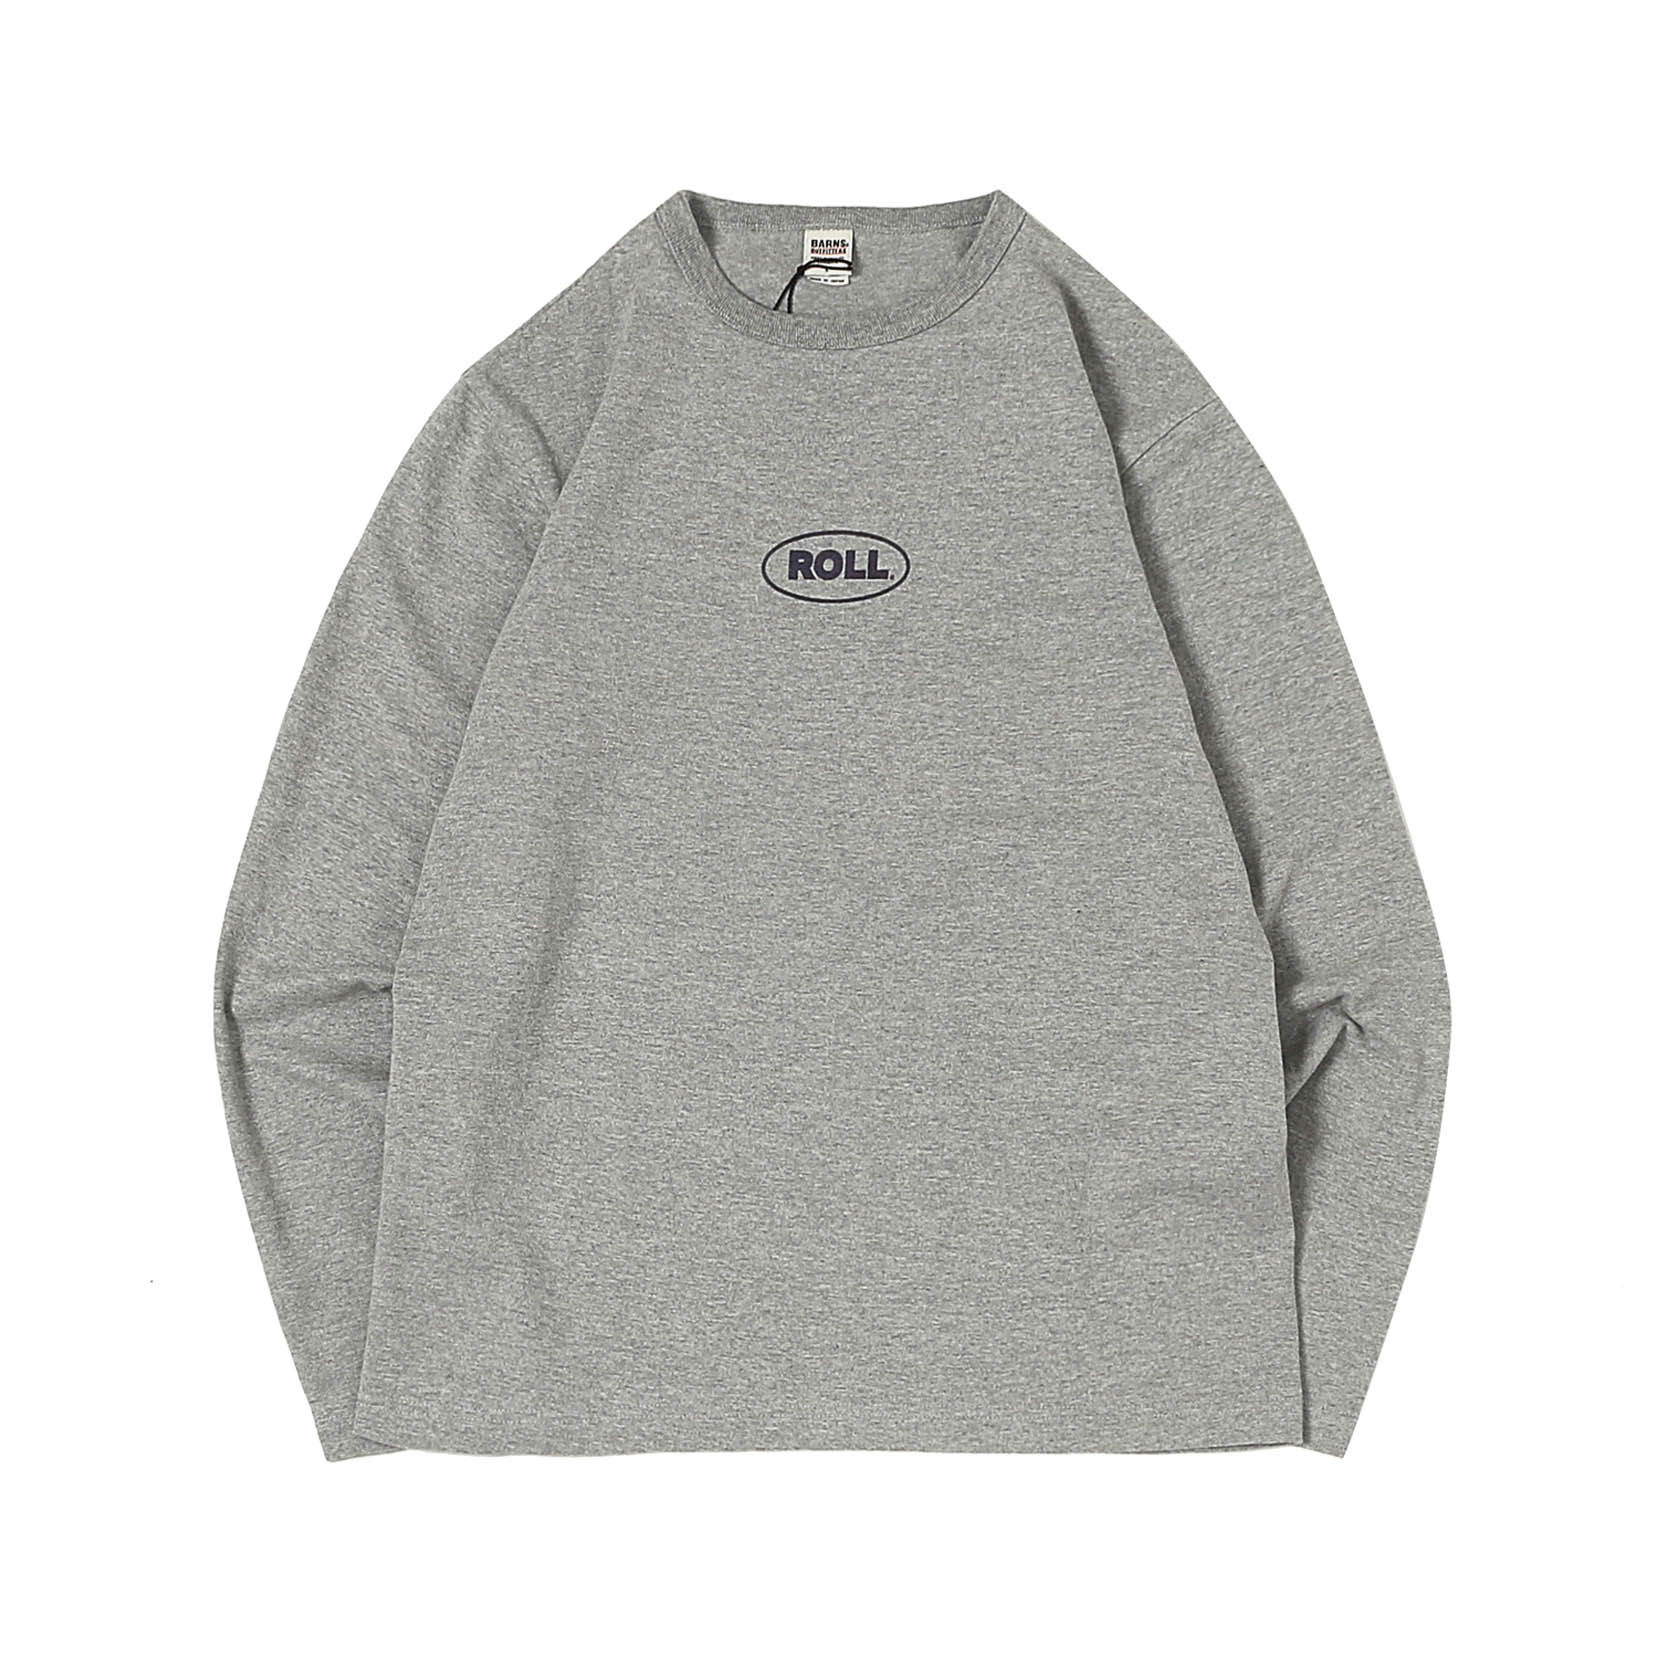 L/S PRINTED TEE - MINI ROLL GREY